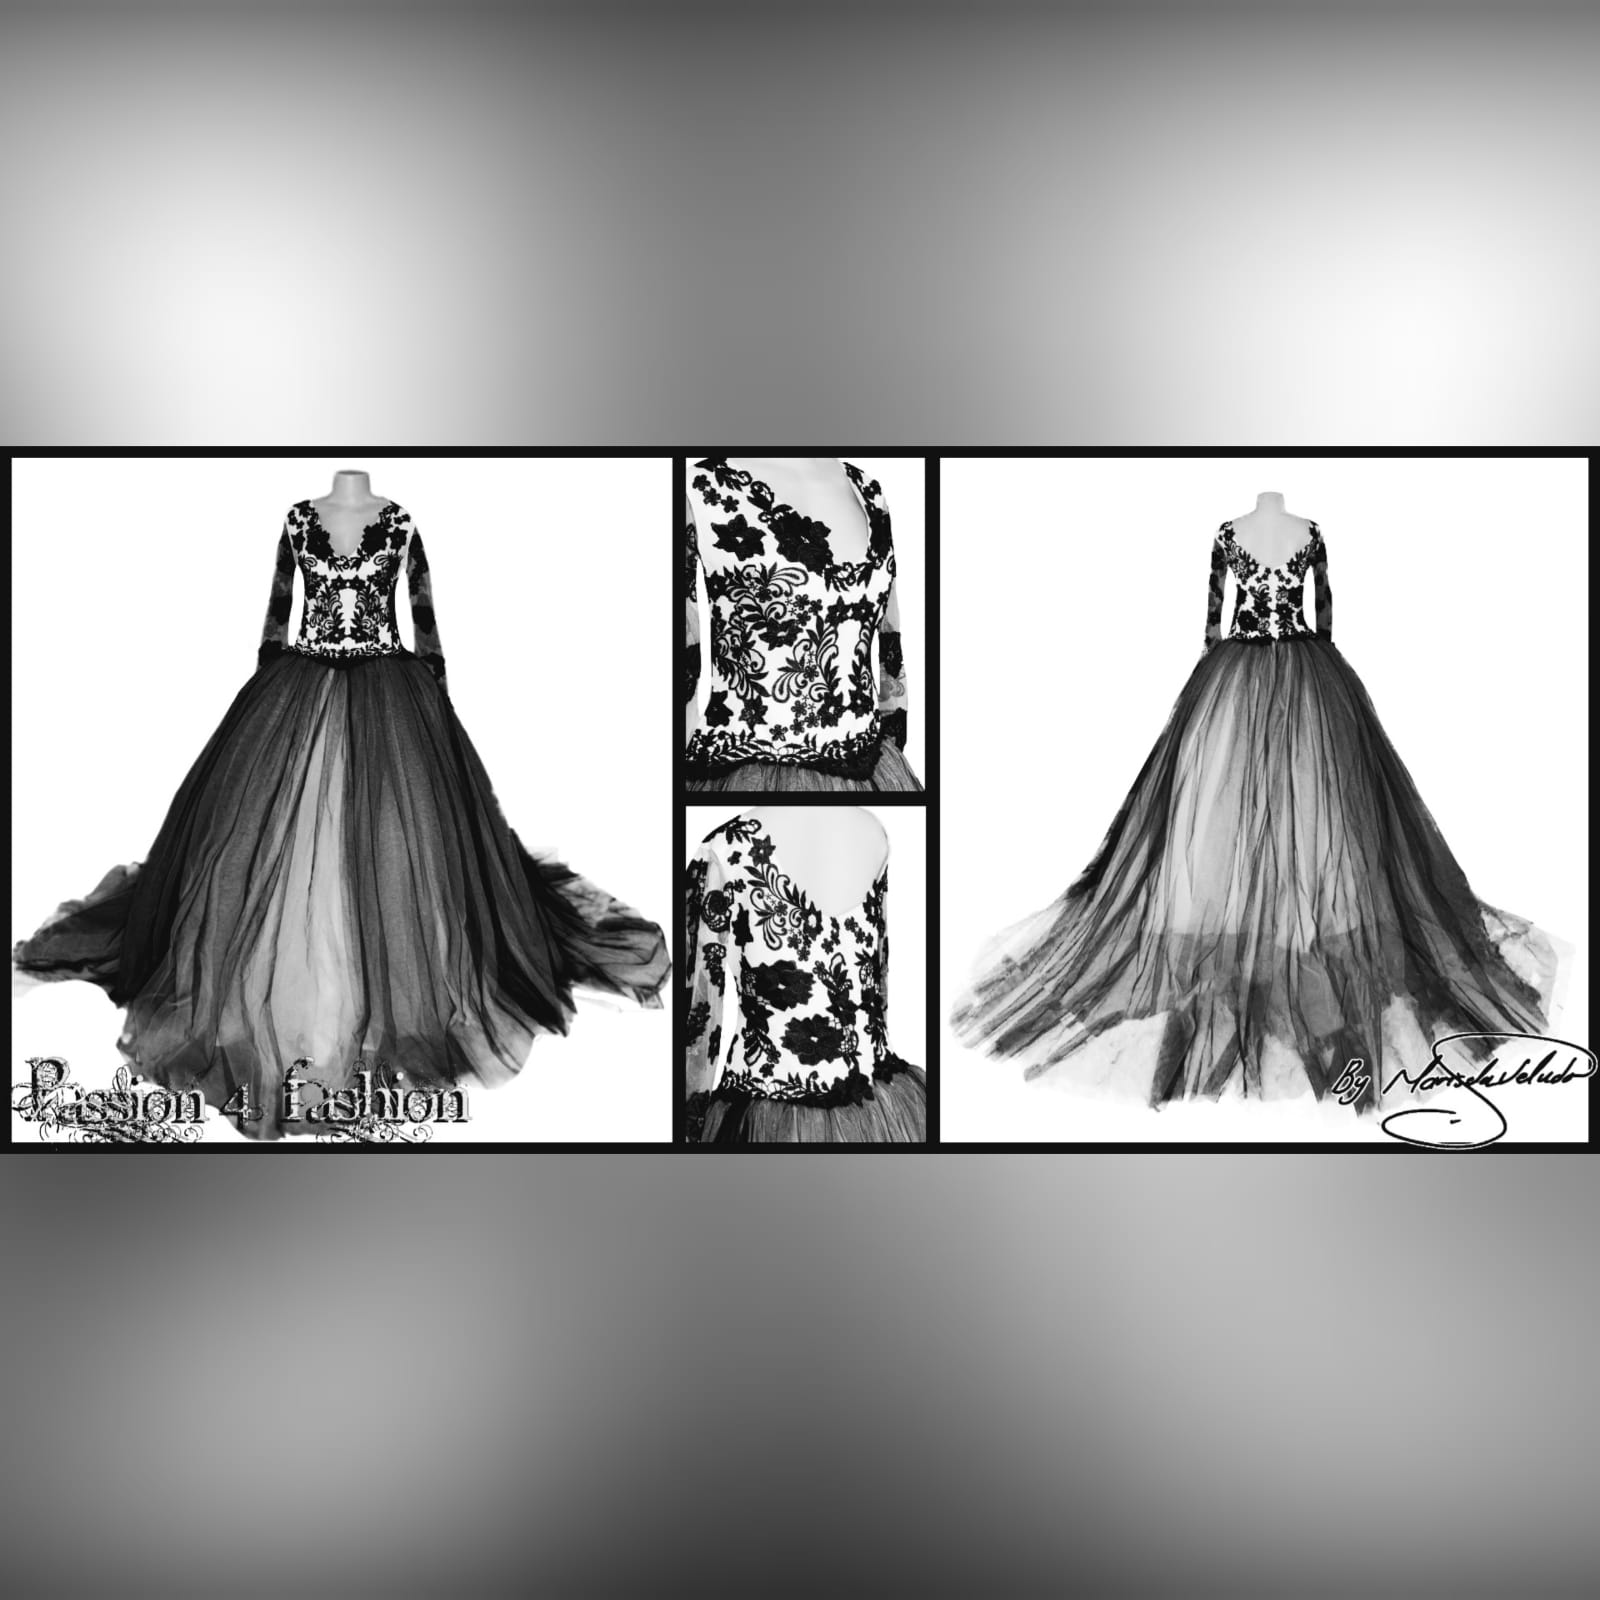 Black and white plus size ball gown wedding dress 2 black and white plus size ball gown wedding dress, bodice in white, detailed with black lace. Illusion lace long sleeves with a poofy black and white tulle bottom. With a train.